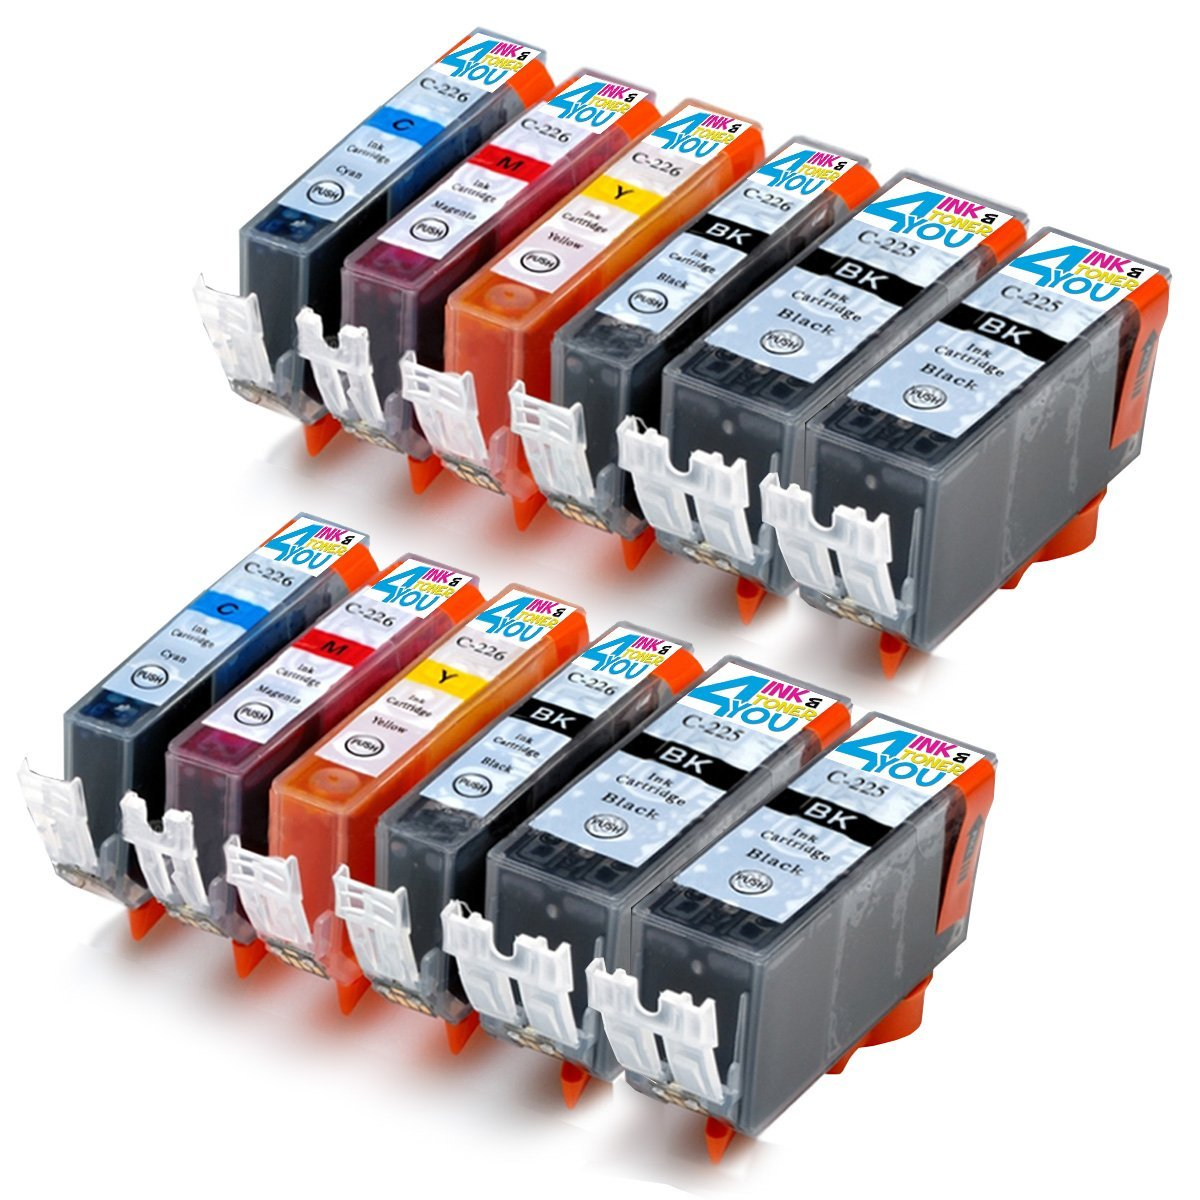 5PK New EDIBLE Ink inkjet for Canon PGI-225 CLI-226 Pixma MG5220 MG5320 MG6120